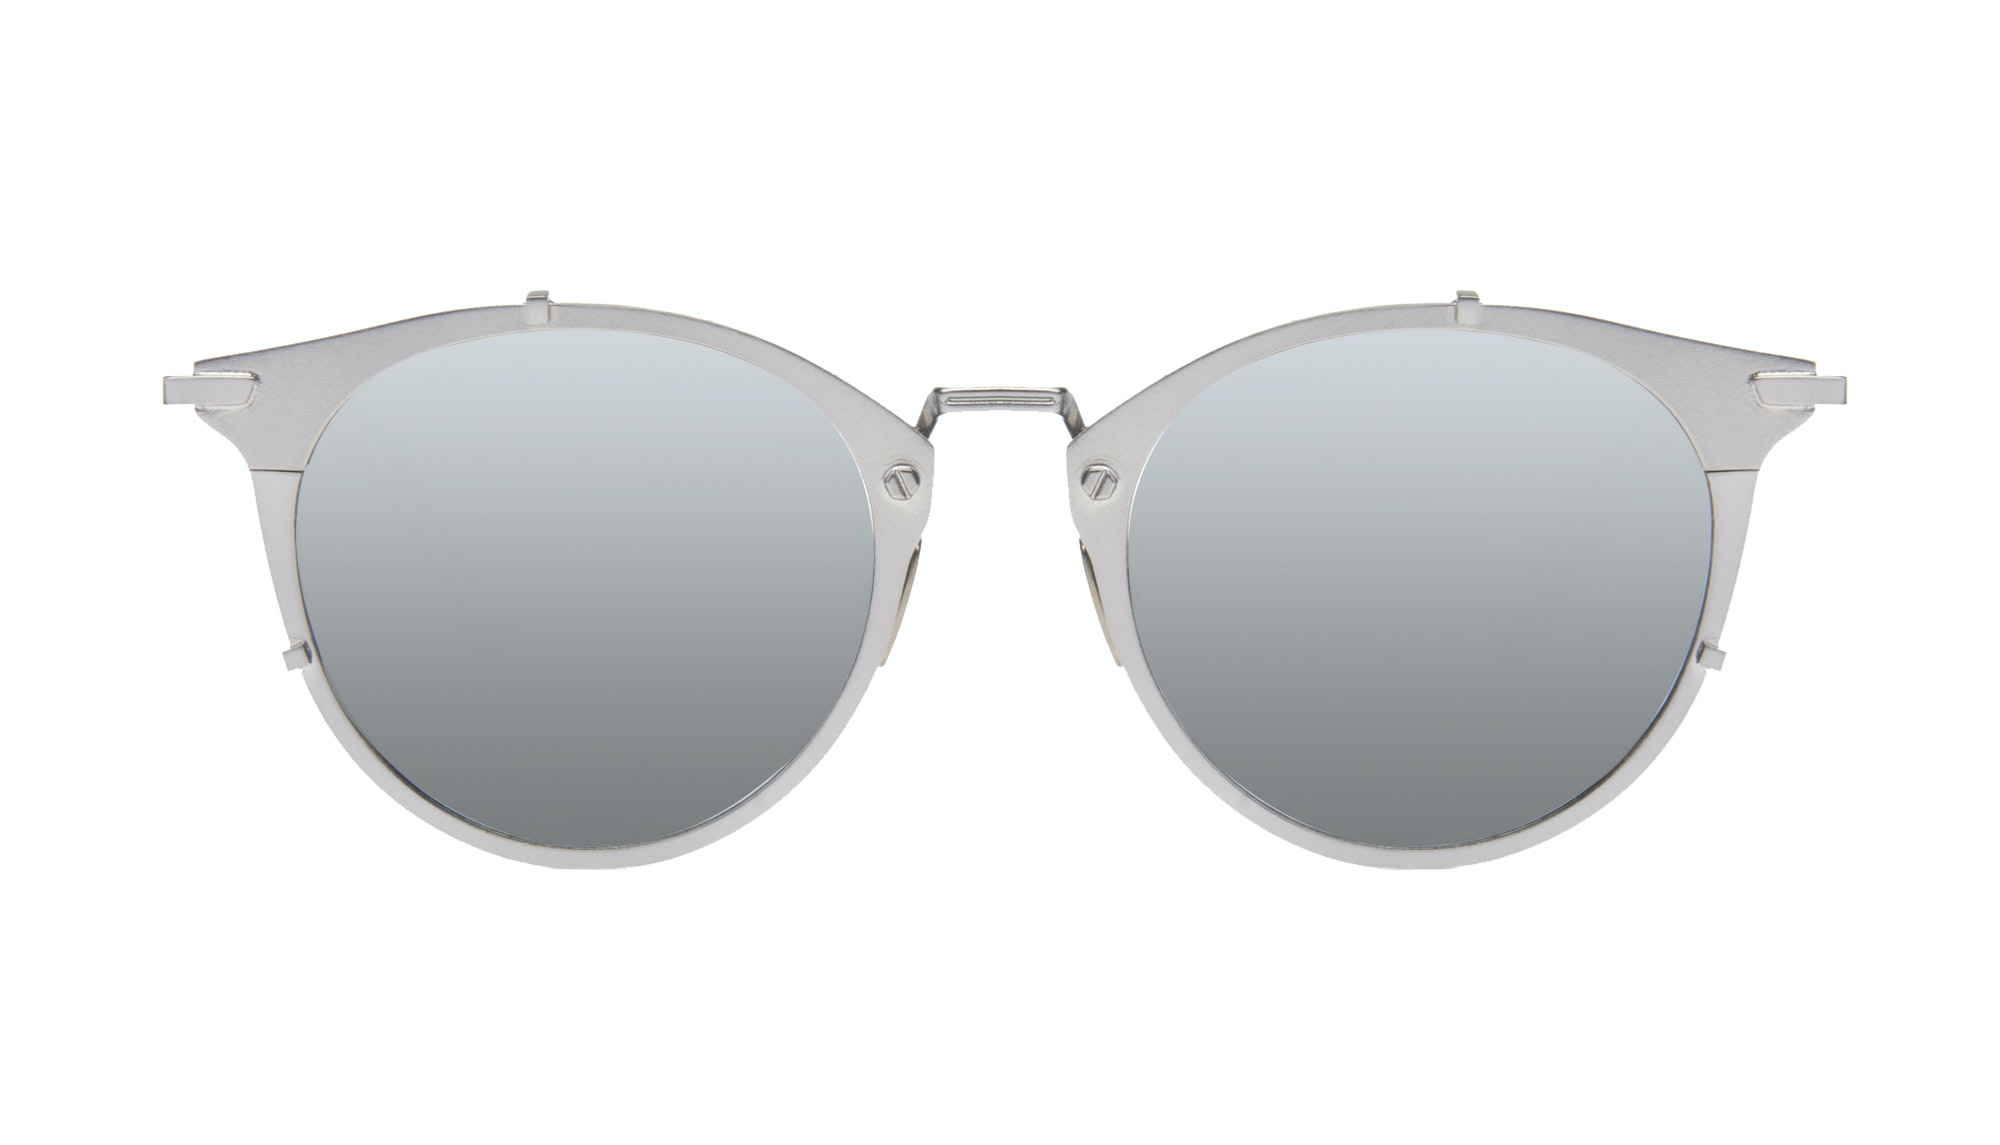 Affordable Fashion Glasses Round Sunglasses Men Way Silver